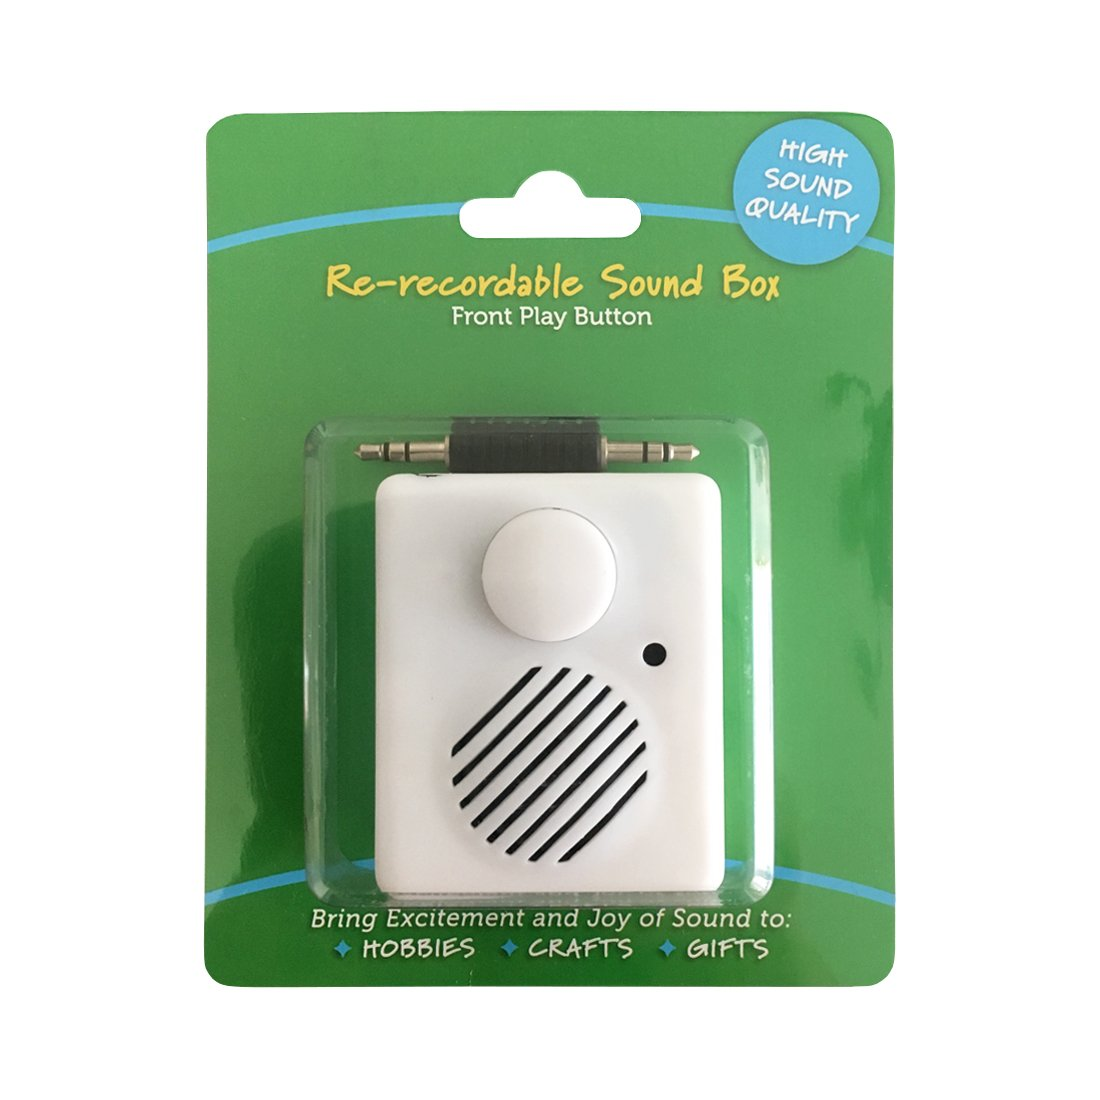 High Sound Quality - Re-recordable Sound Box - Front Play Button - Record from any Device thru Audio Port